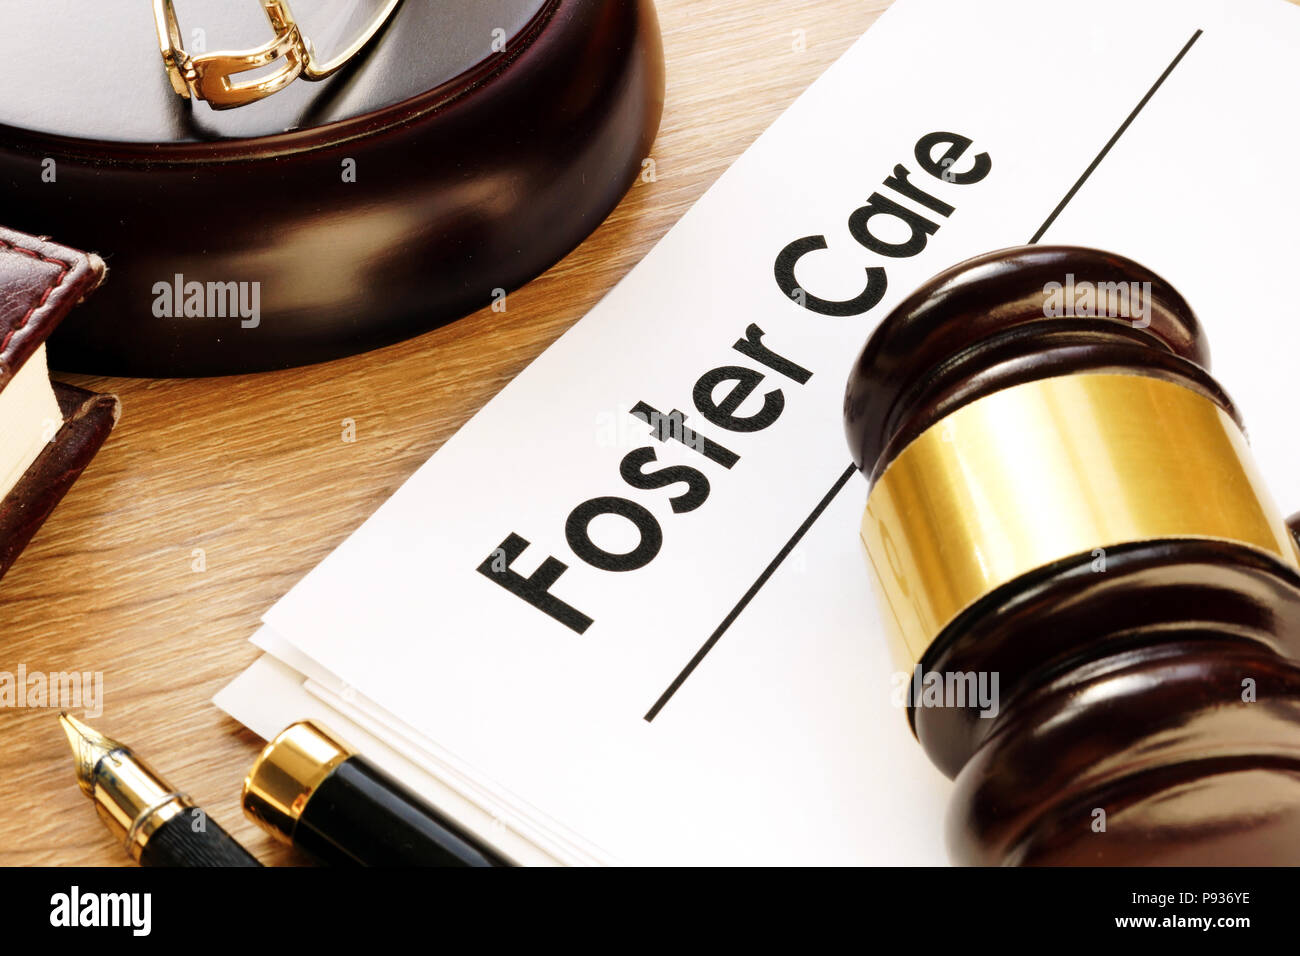 Foster care. Documents and gavel on a desk. - Stock Image